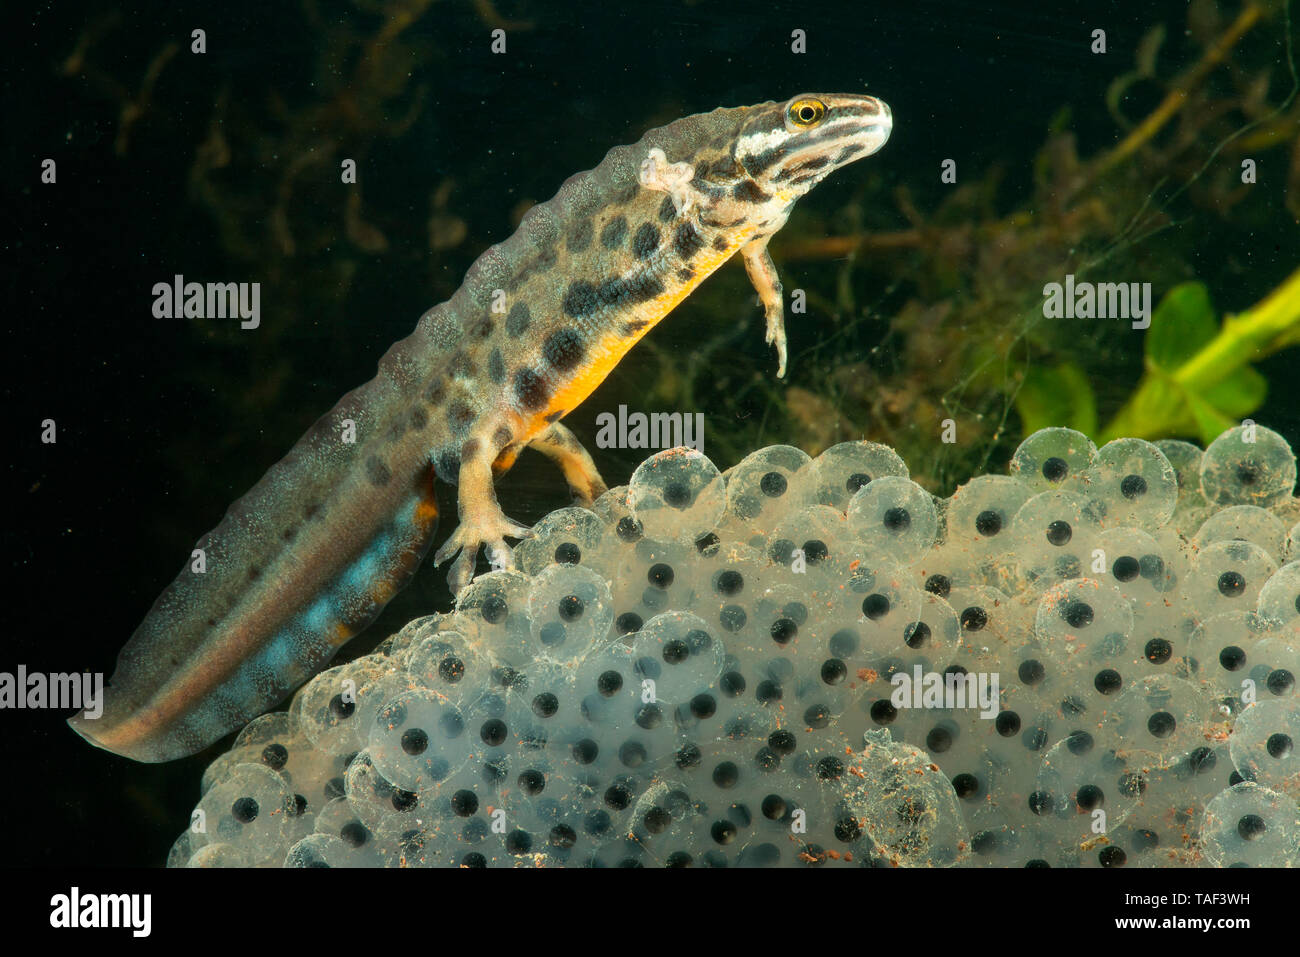 Common Newt (Lissotriton vulgaris), male on a spawning of European Frog, Saulxures-les-Nancy, Lorraine, France - Stock Image